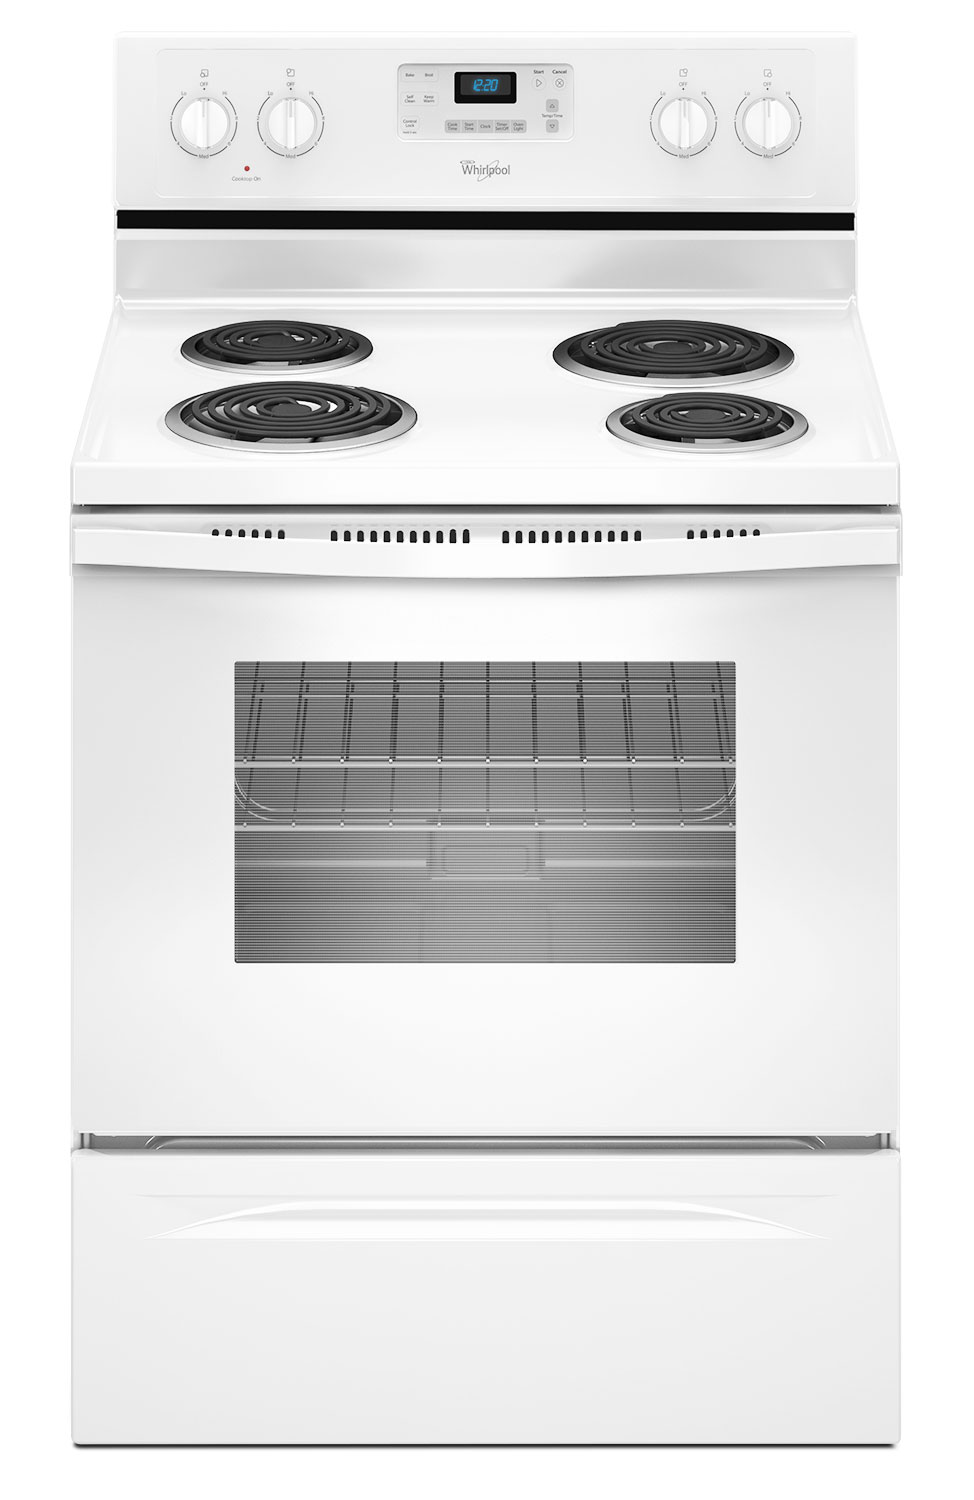 Cooking Products - Whirlpool White Freestanding Electric Range (4.8 Cu. Ft.) - YWFC310S0EW